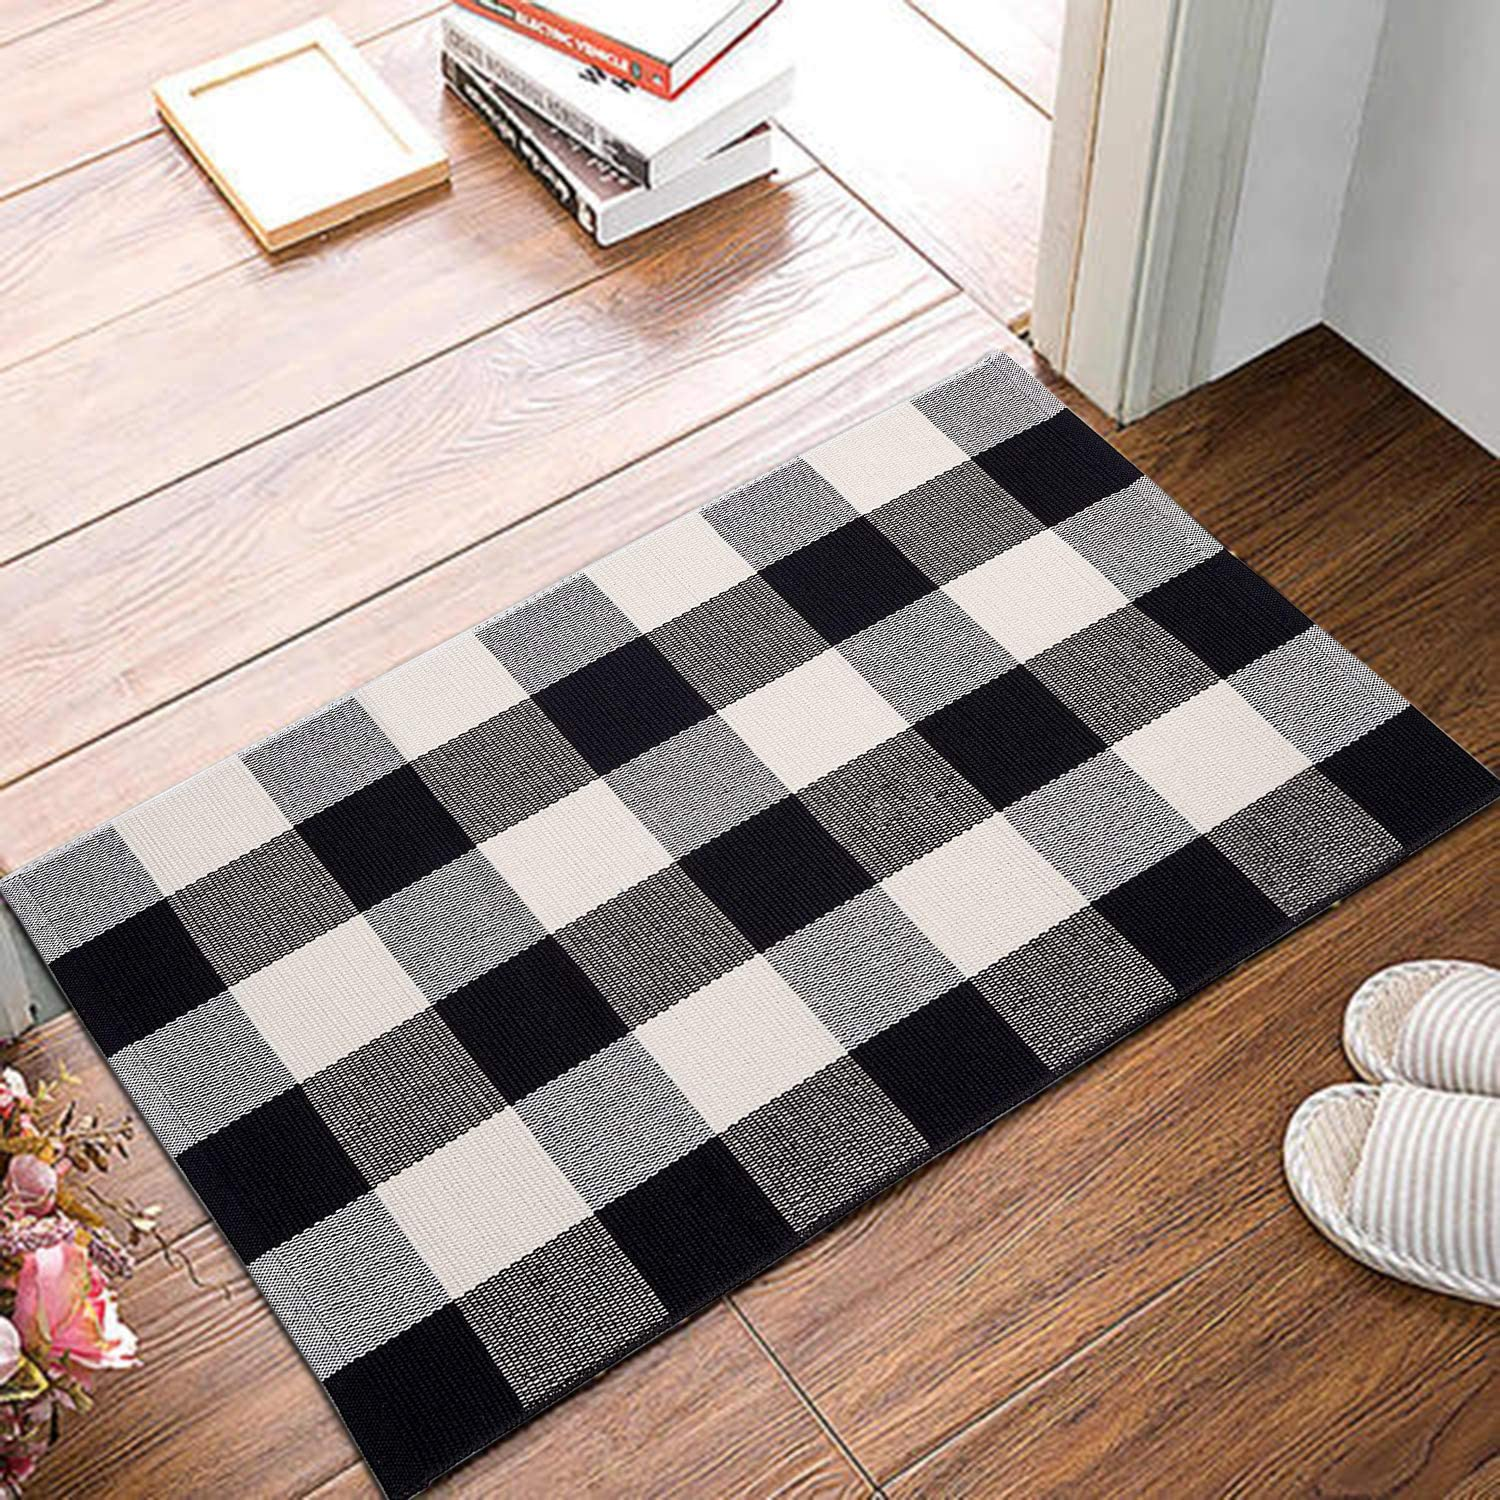 Cotton Buffalo Plaid Rugs Black And White Checkered Rug Welcome Door Mat 17 7 X27 5 For Kitchen Carpet Bathroom Outdoor Porch Laundry Living Room Braided Throw Washable Woven Check Walmart Com